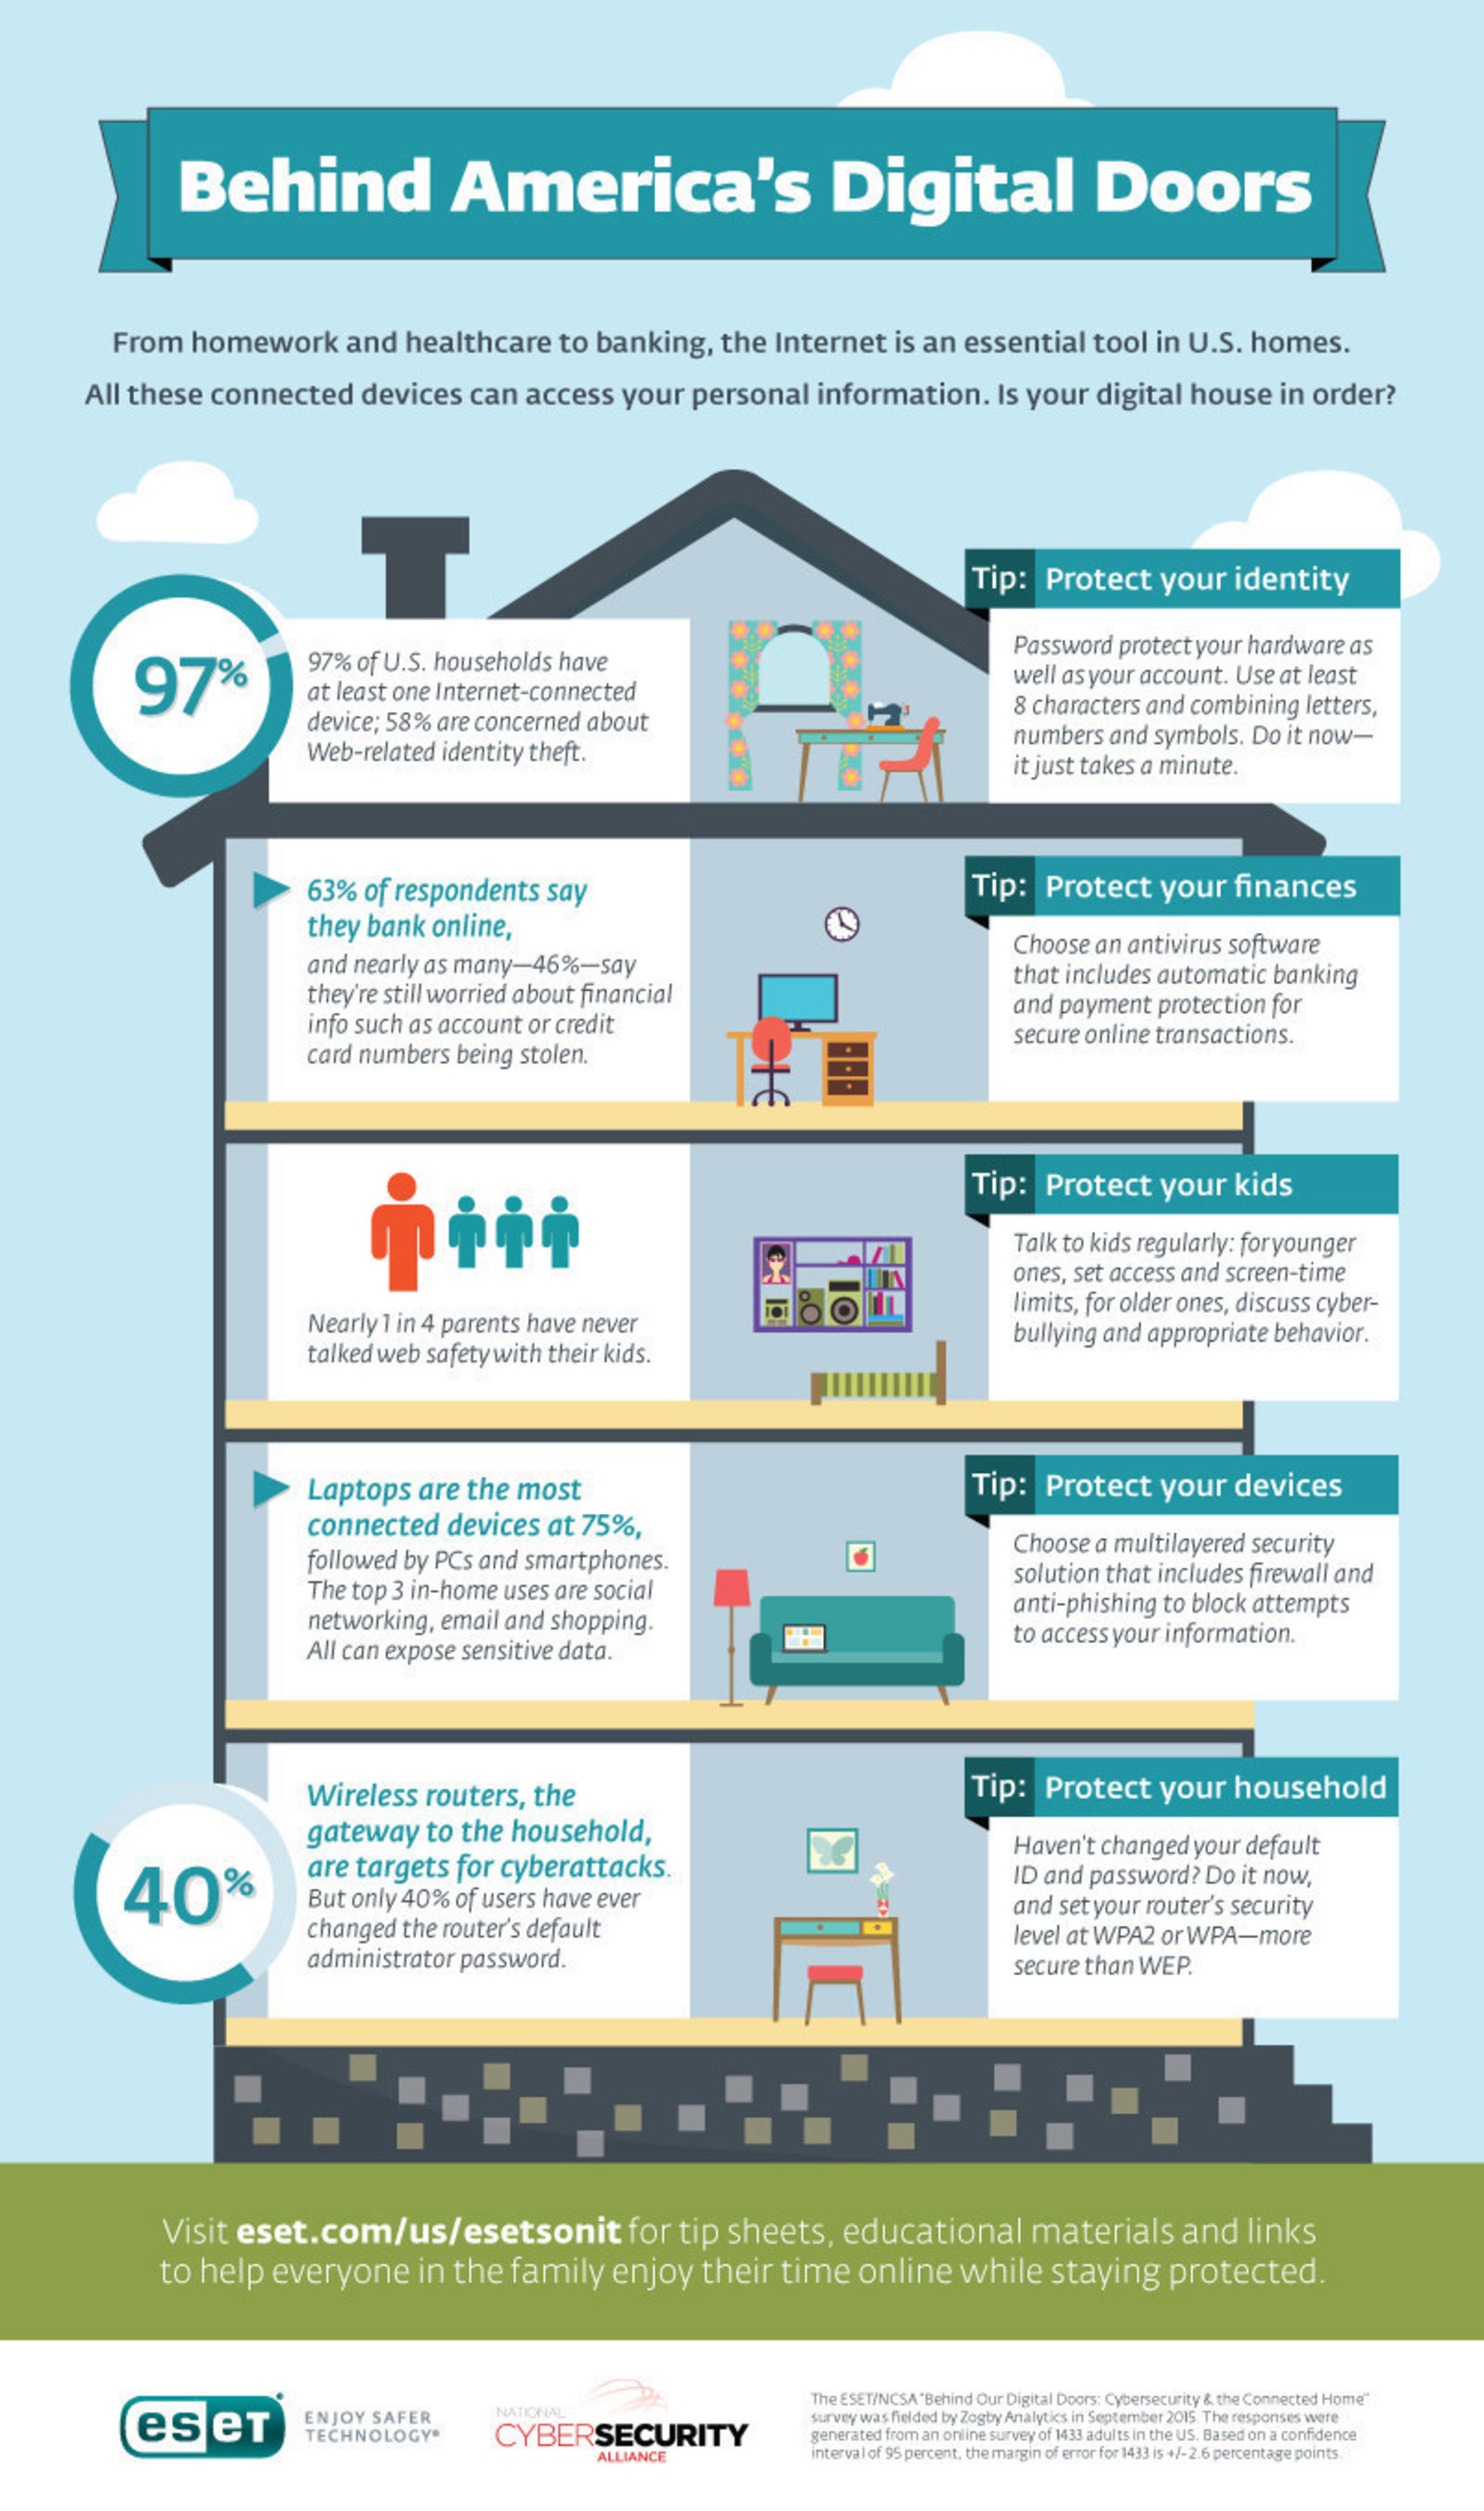 ESET and National Cyber Security Alliance Study Reveals Almost 80 Percent of American Homes Feel Cyber Secure Despite Unsecured Digital Doors